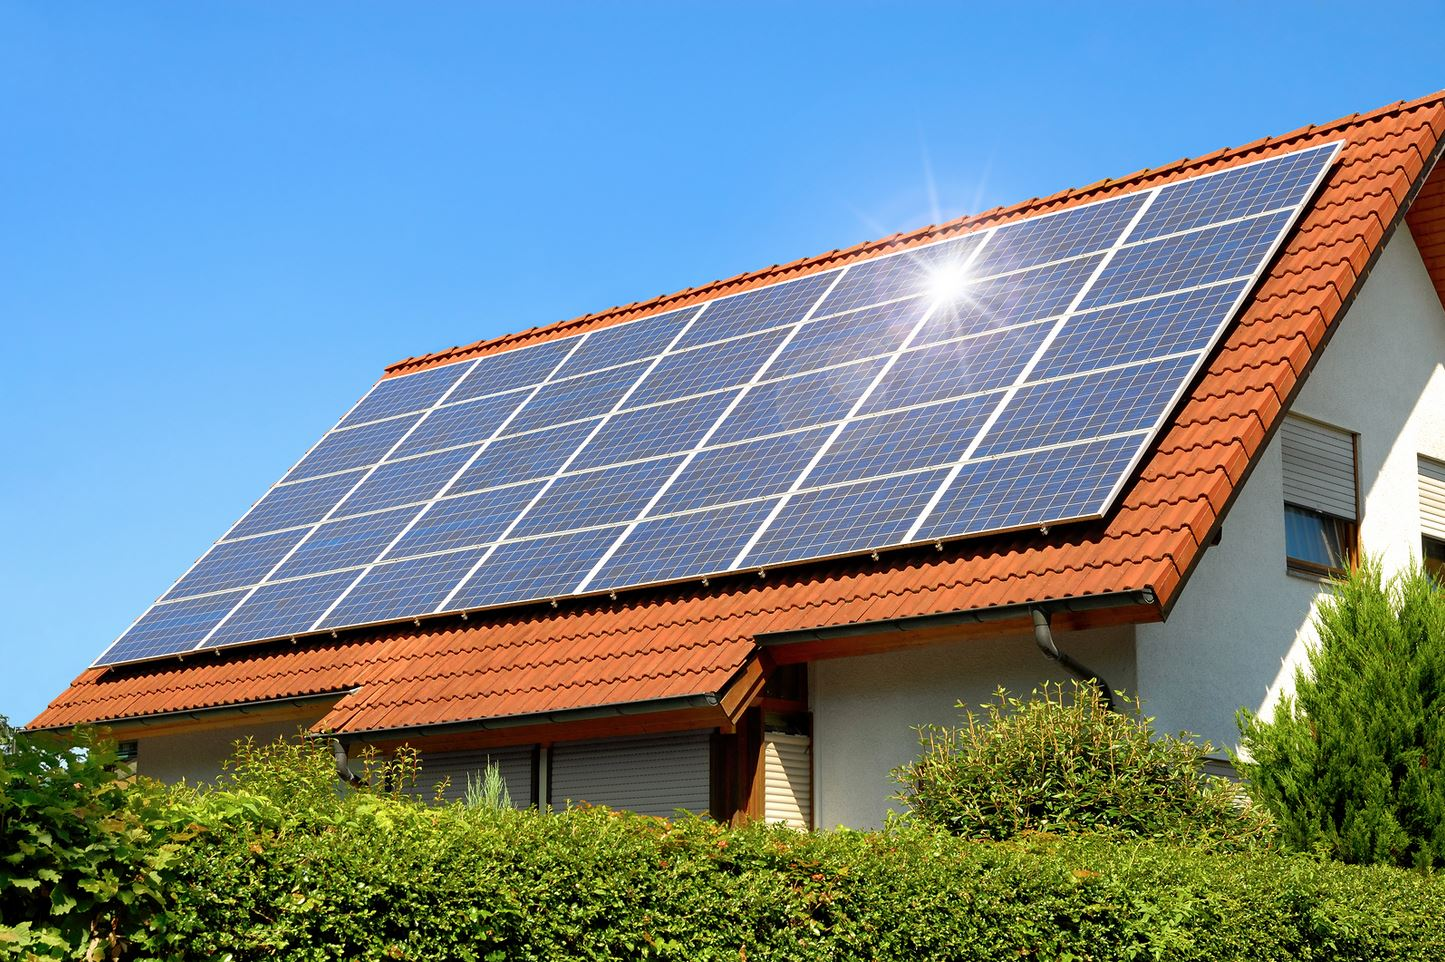 The Top 7 Reasons to Go Solar